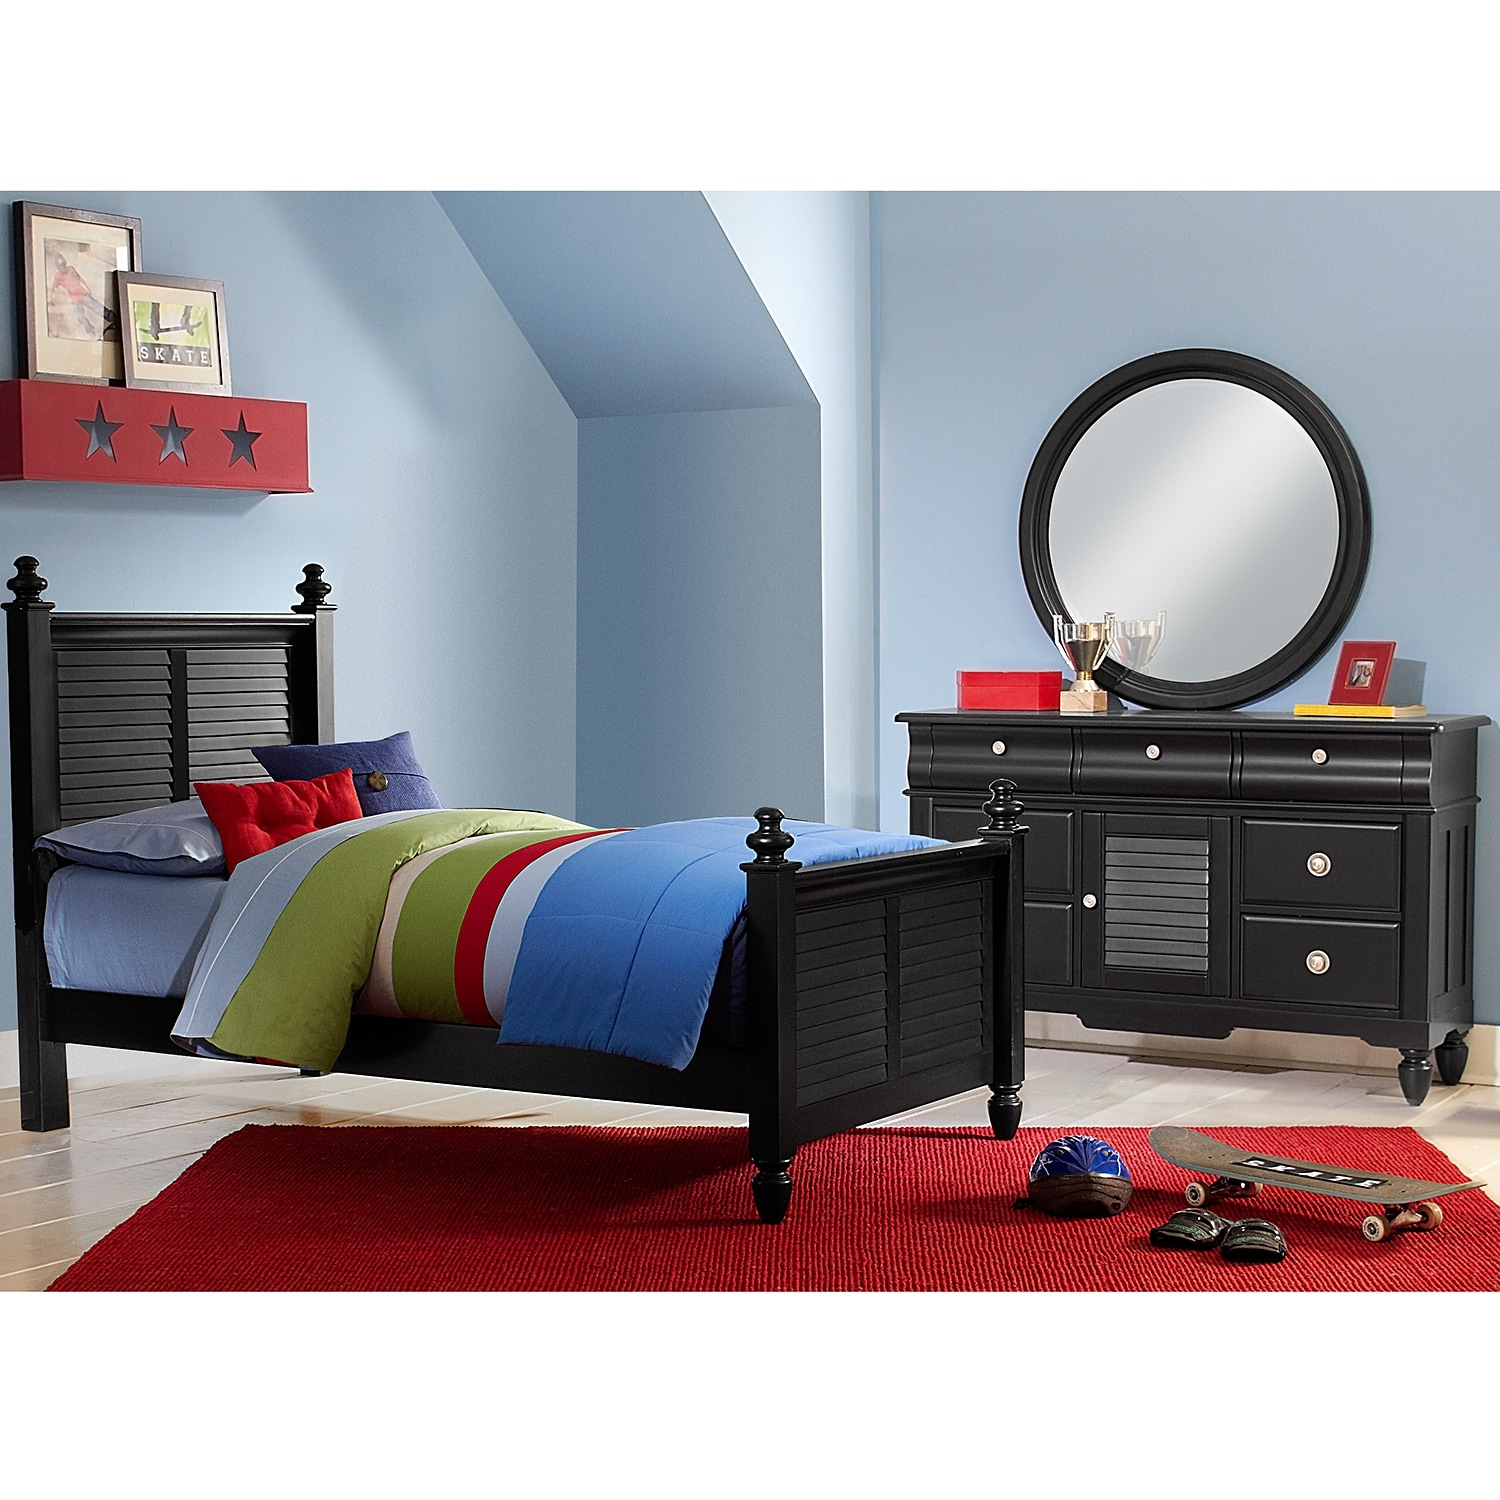 Seaside 5-Piece Full Bedroom Set - Black